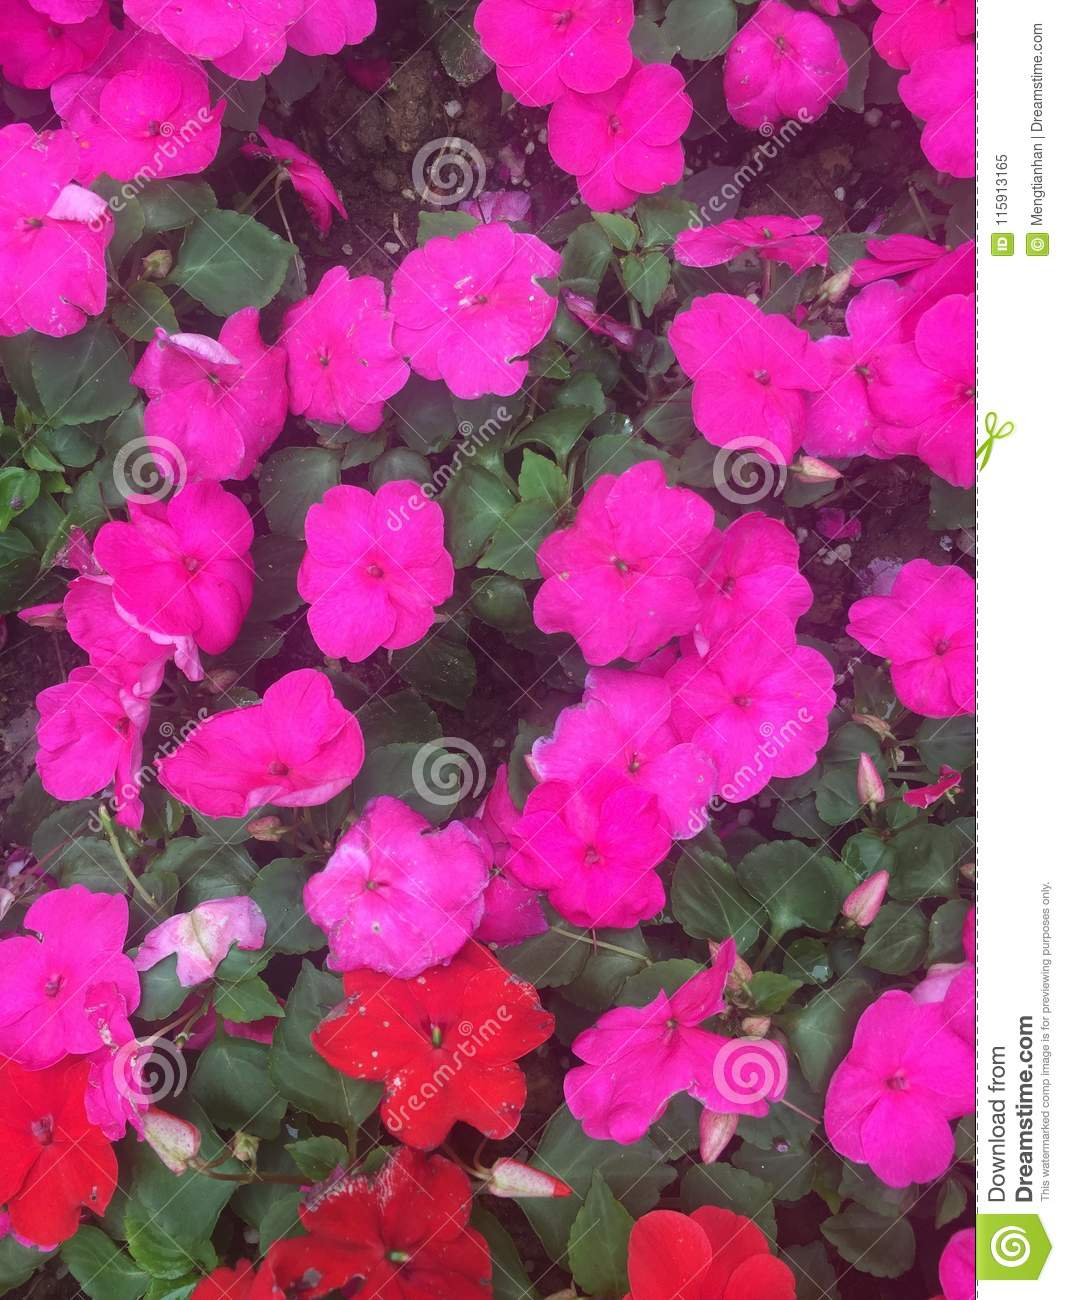 Garden balsam impatiens balsamina l stock image image of girls annual flowers of impatiens and impatiens belong to six parts roots stems leaves flowers fruits and seeds it is also known as goldilocks because its izmirmasajfo